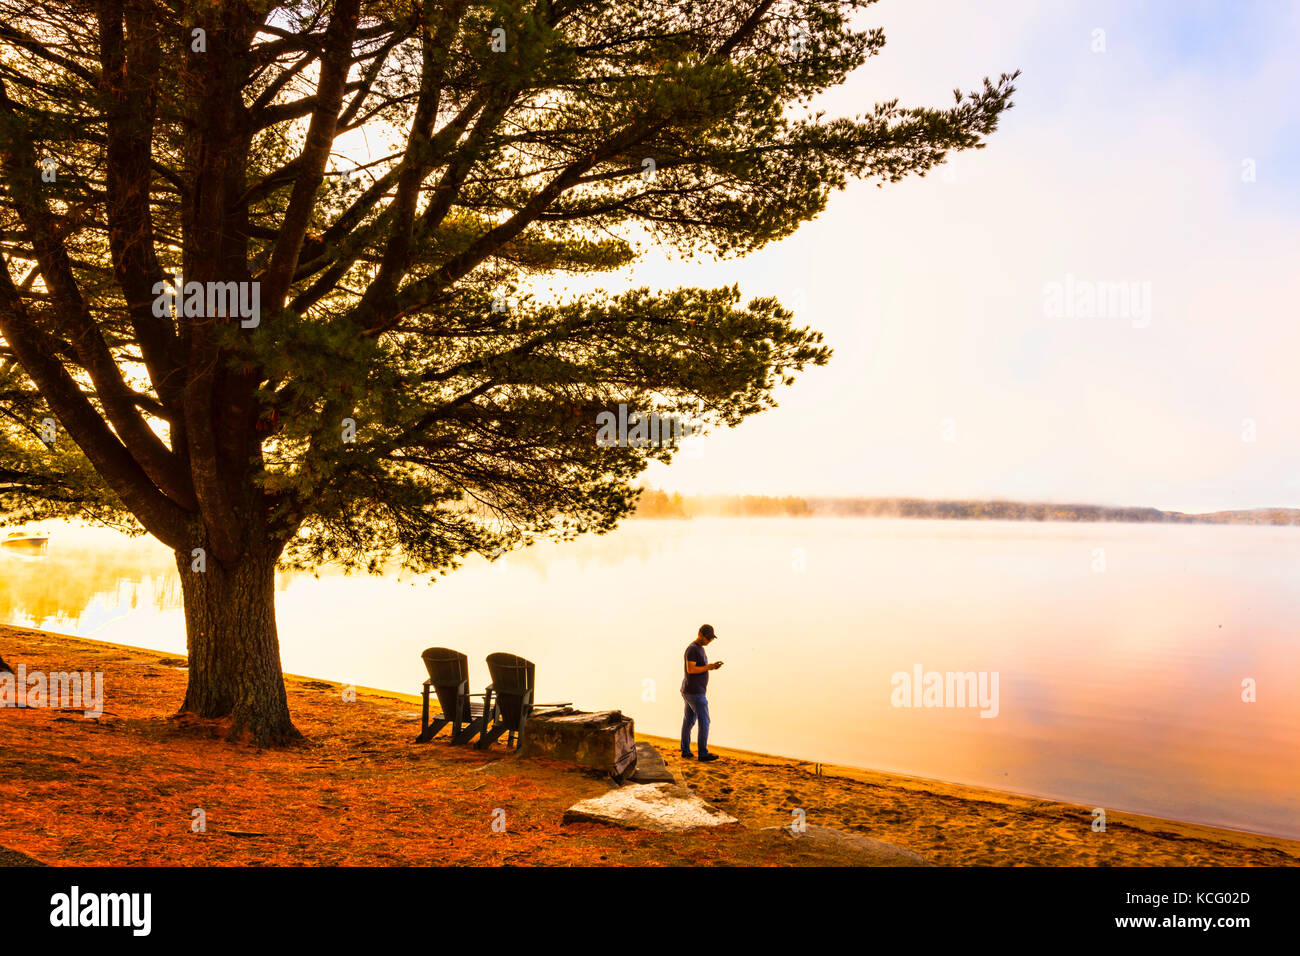 Sunrise at Canada,Ontario,Huntsville,Dwight, Dwight Beach sommer playground in Ontario's North in Cottage Country - Stock Image